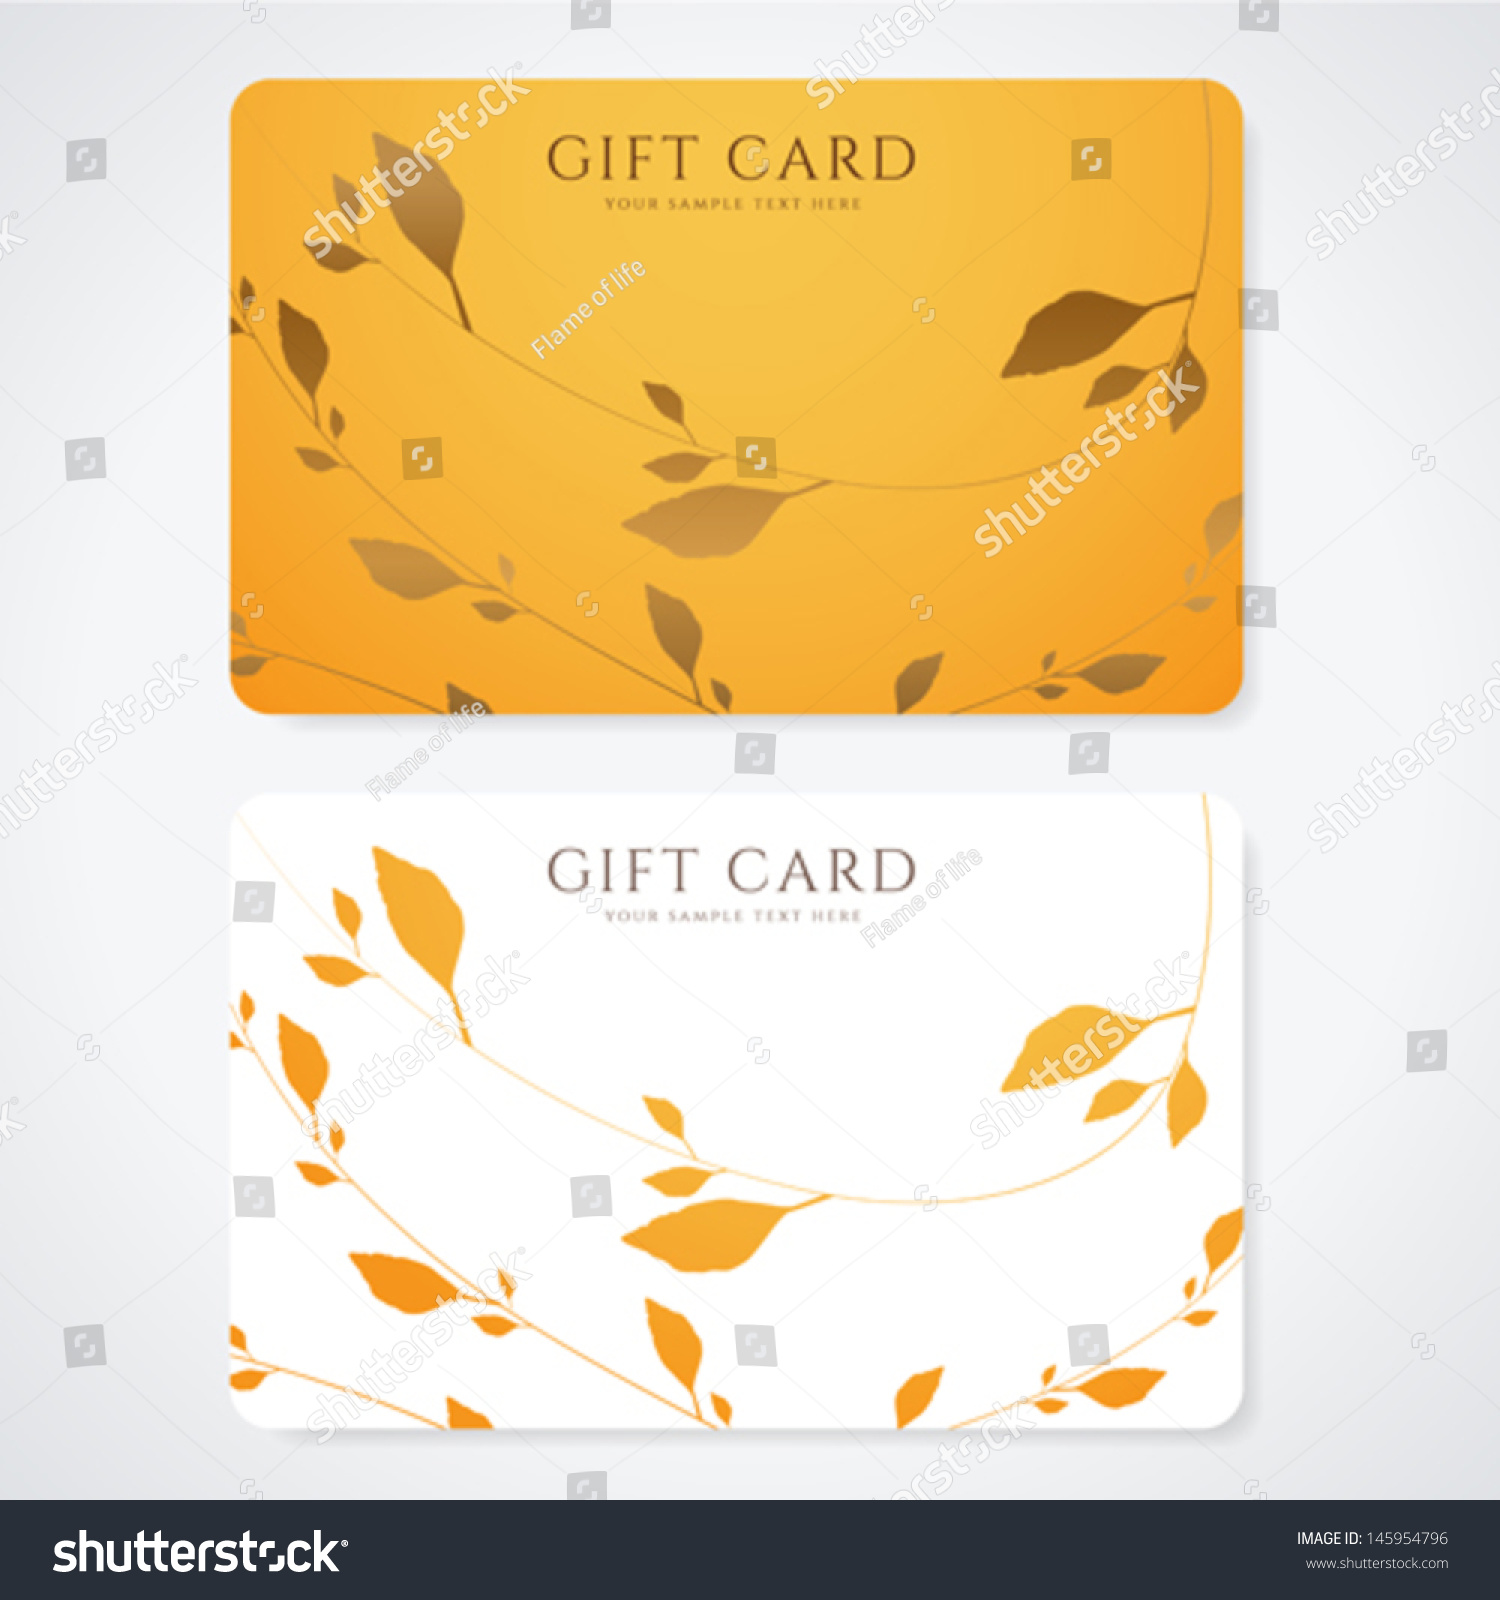 Gift Card Discount Card Business Card With Floral